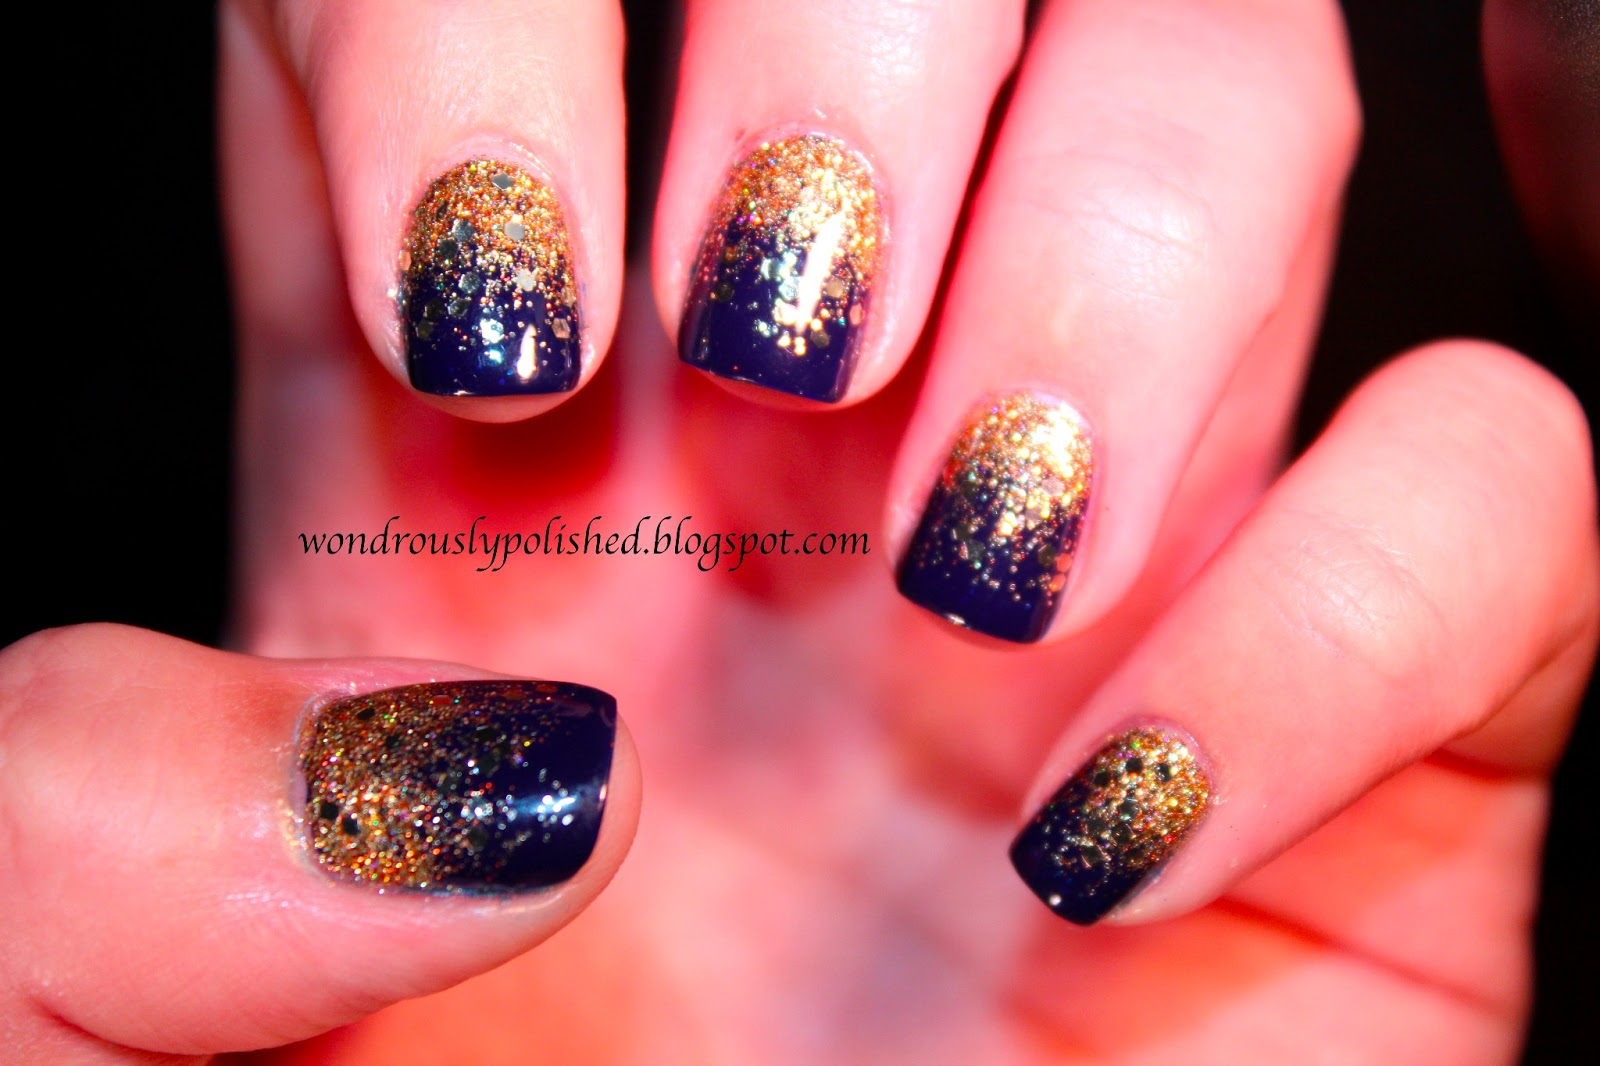 Wondrously Polished: Sparkle Gradient with BL, CG and SOPI